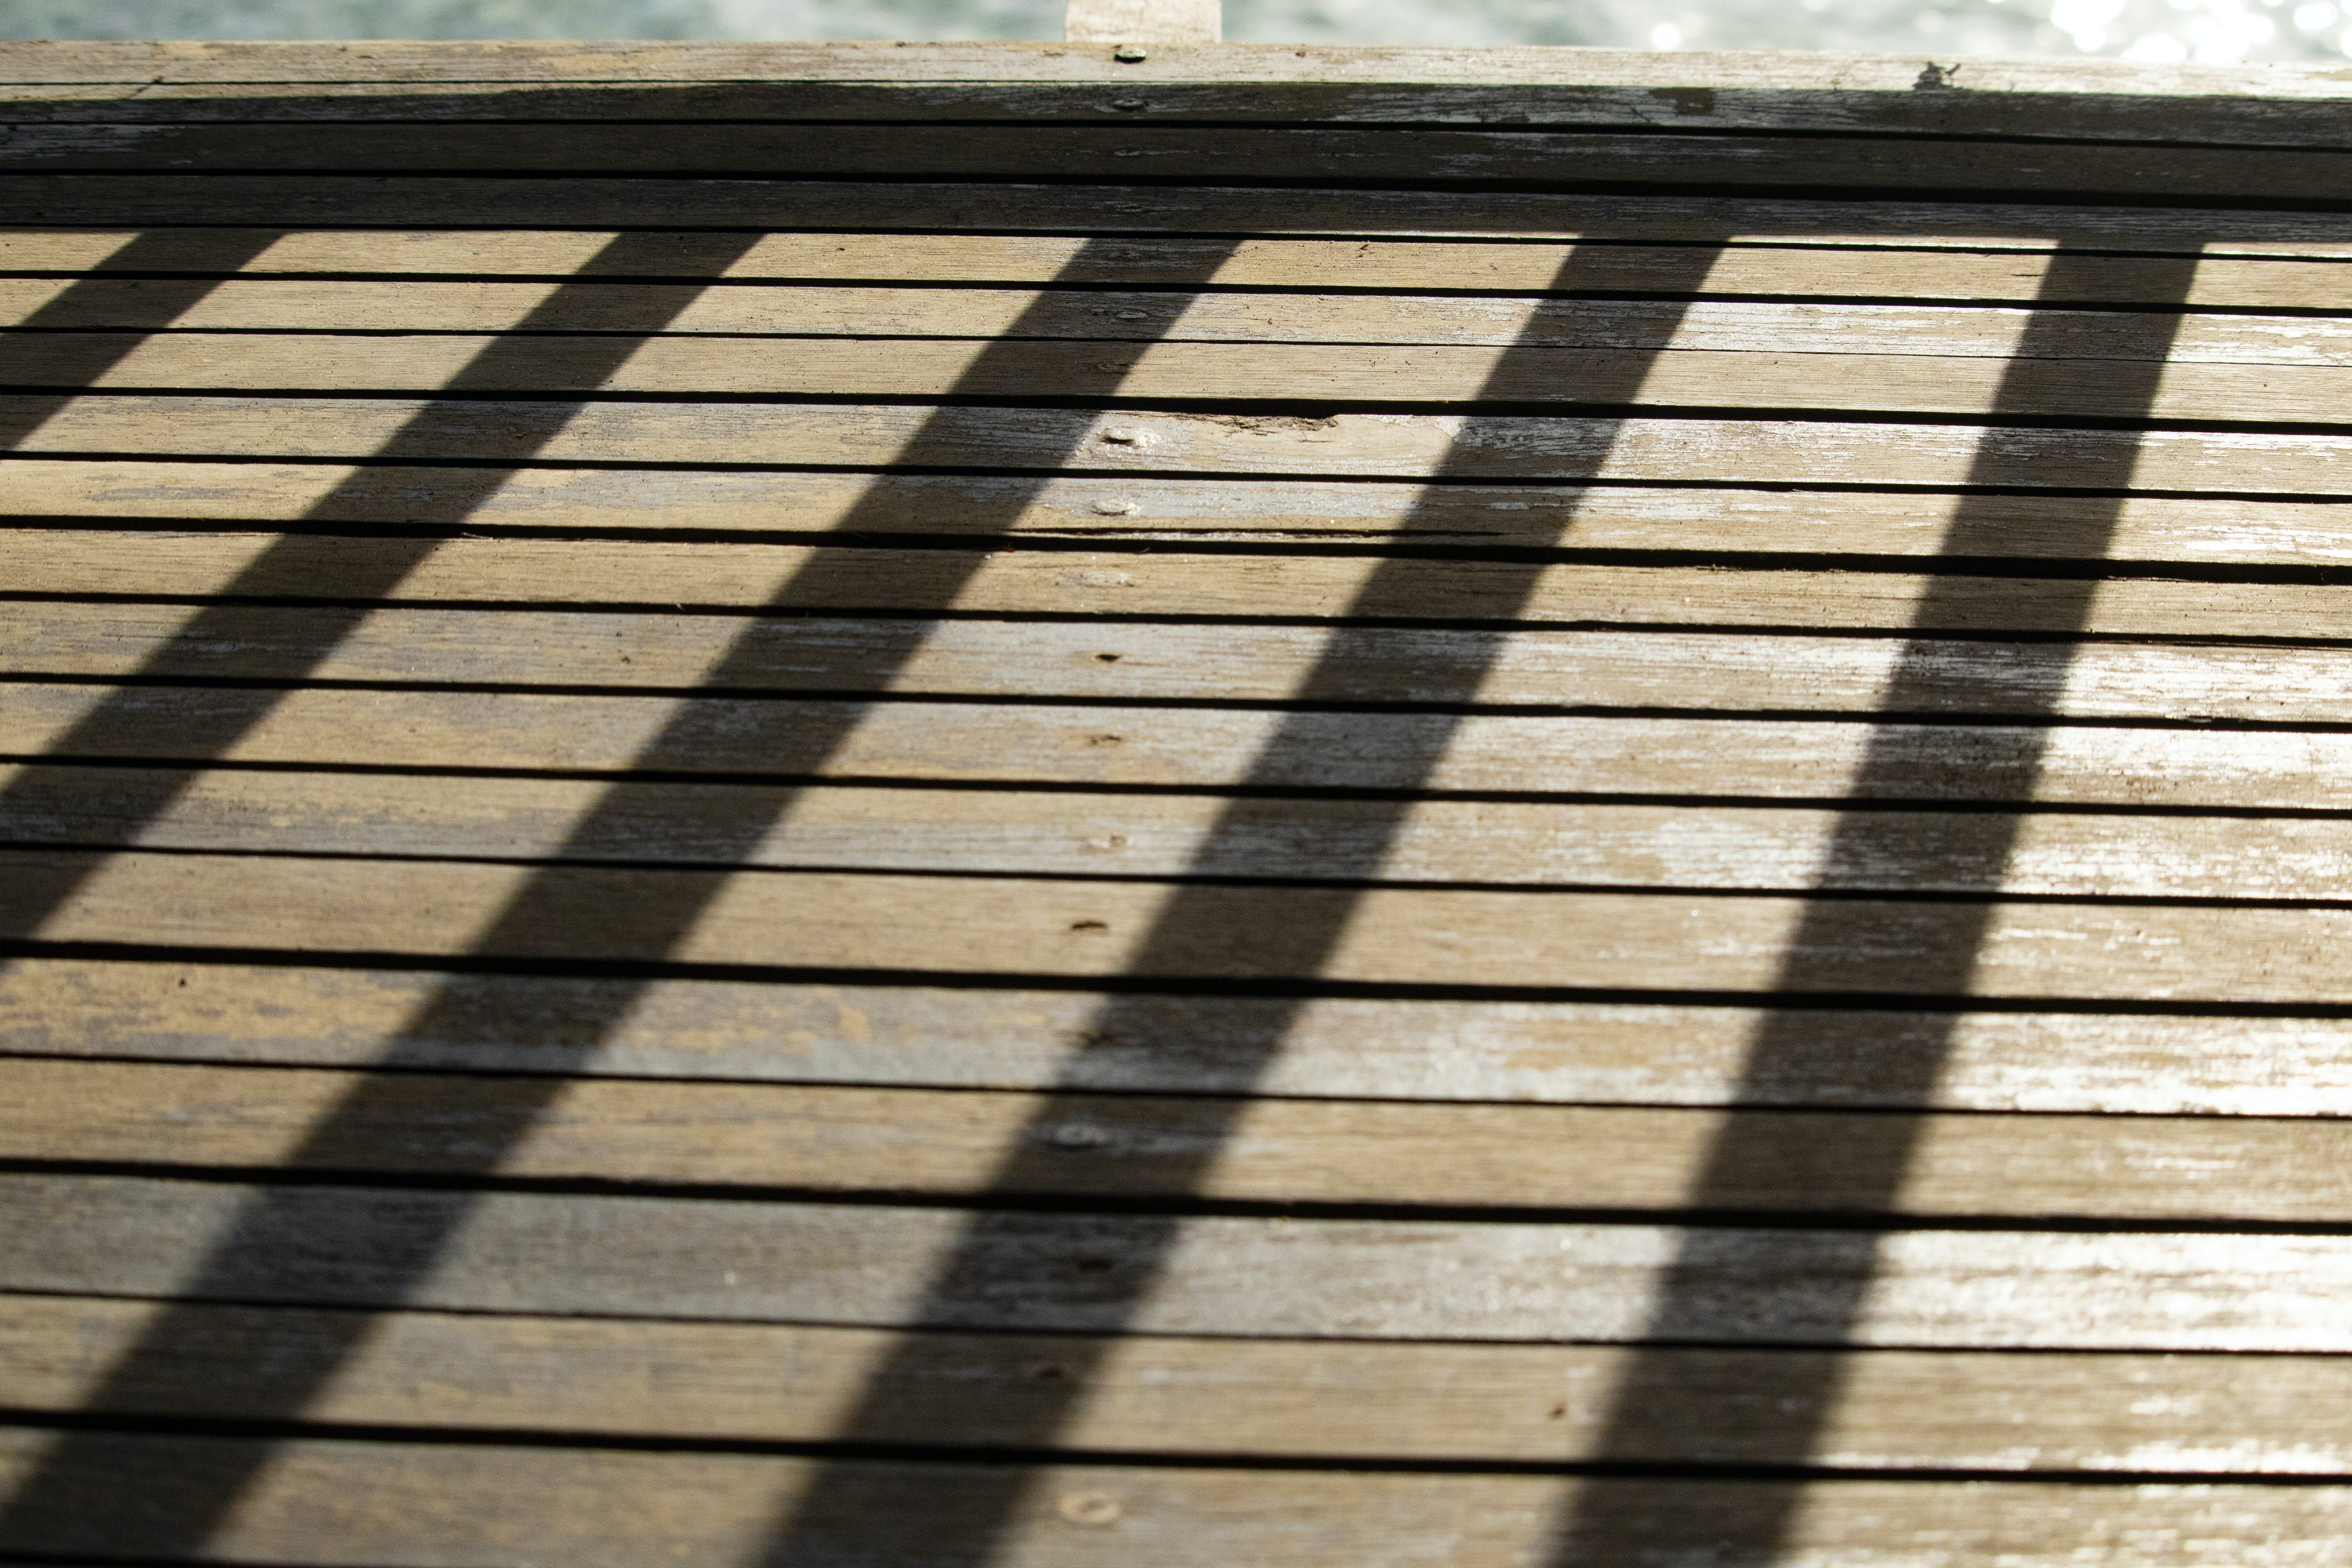 Free stock photo of shadow of a fence